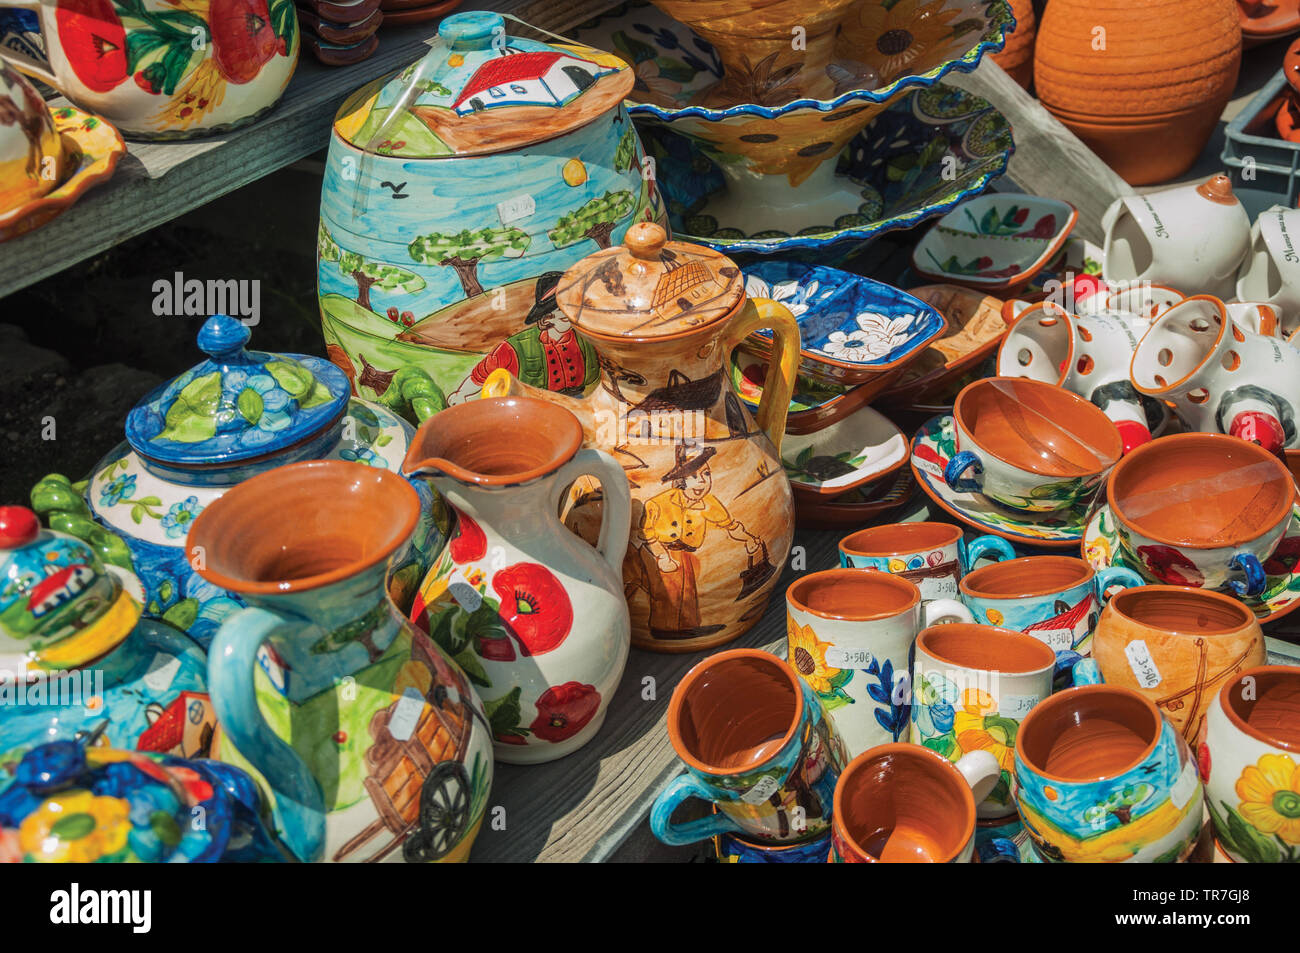 Colorful handmade porcelain pots and bowls, typical of the